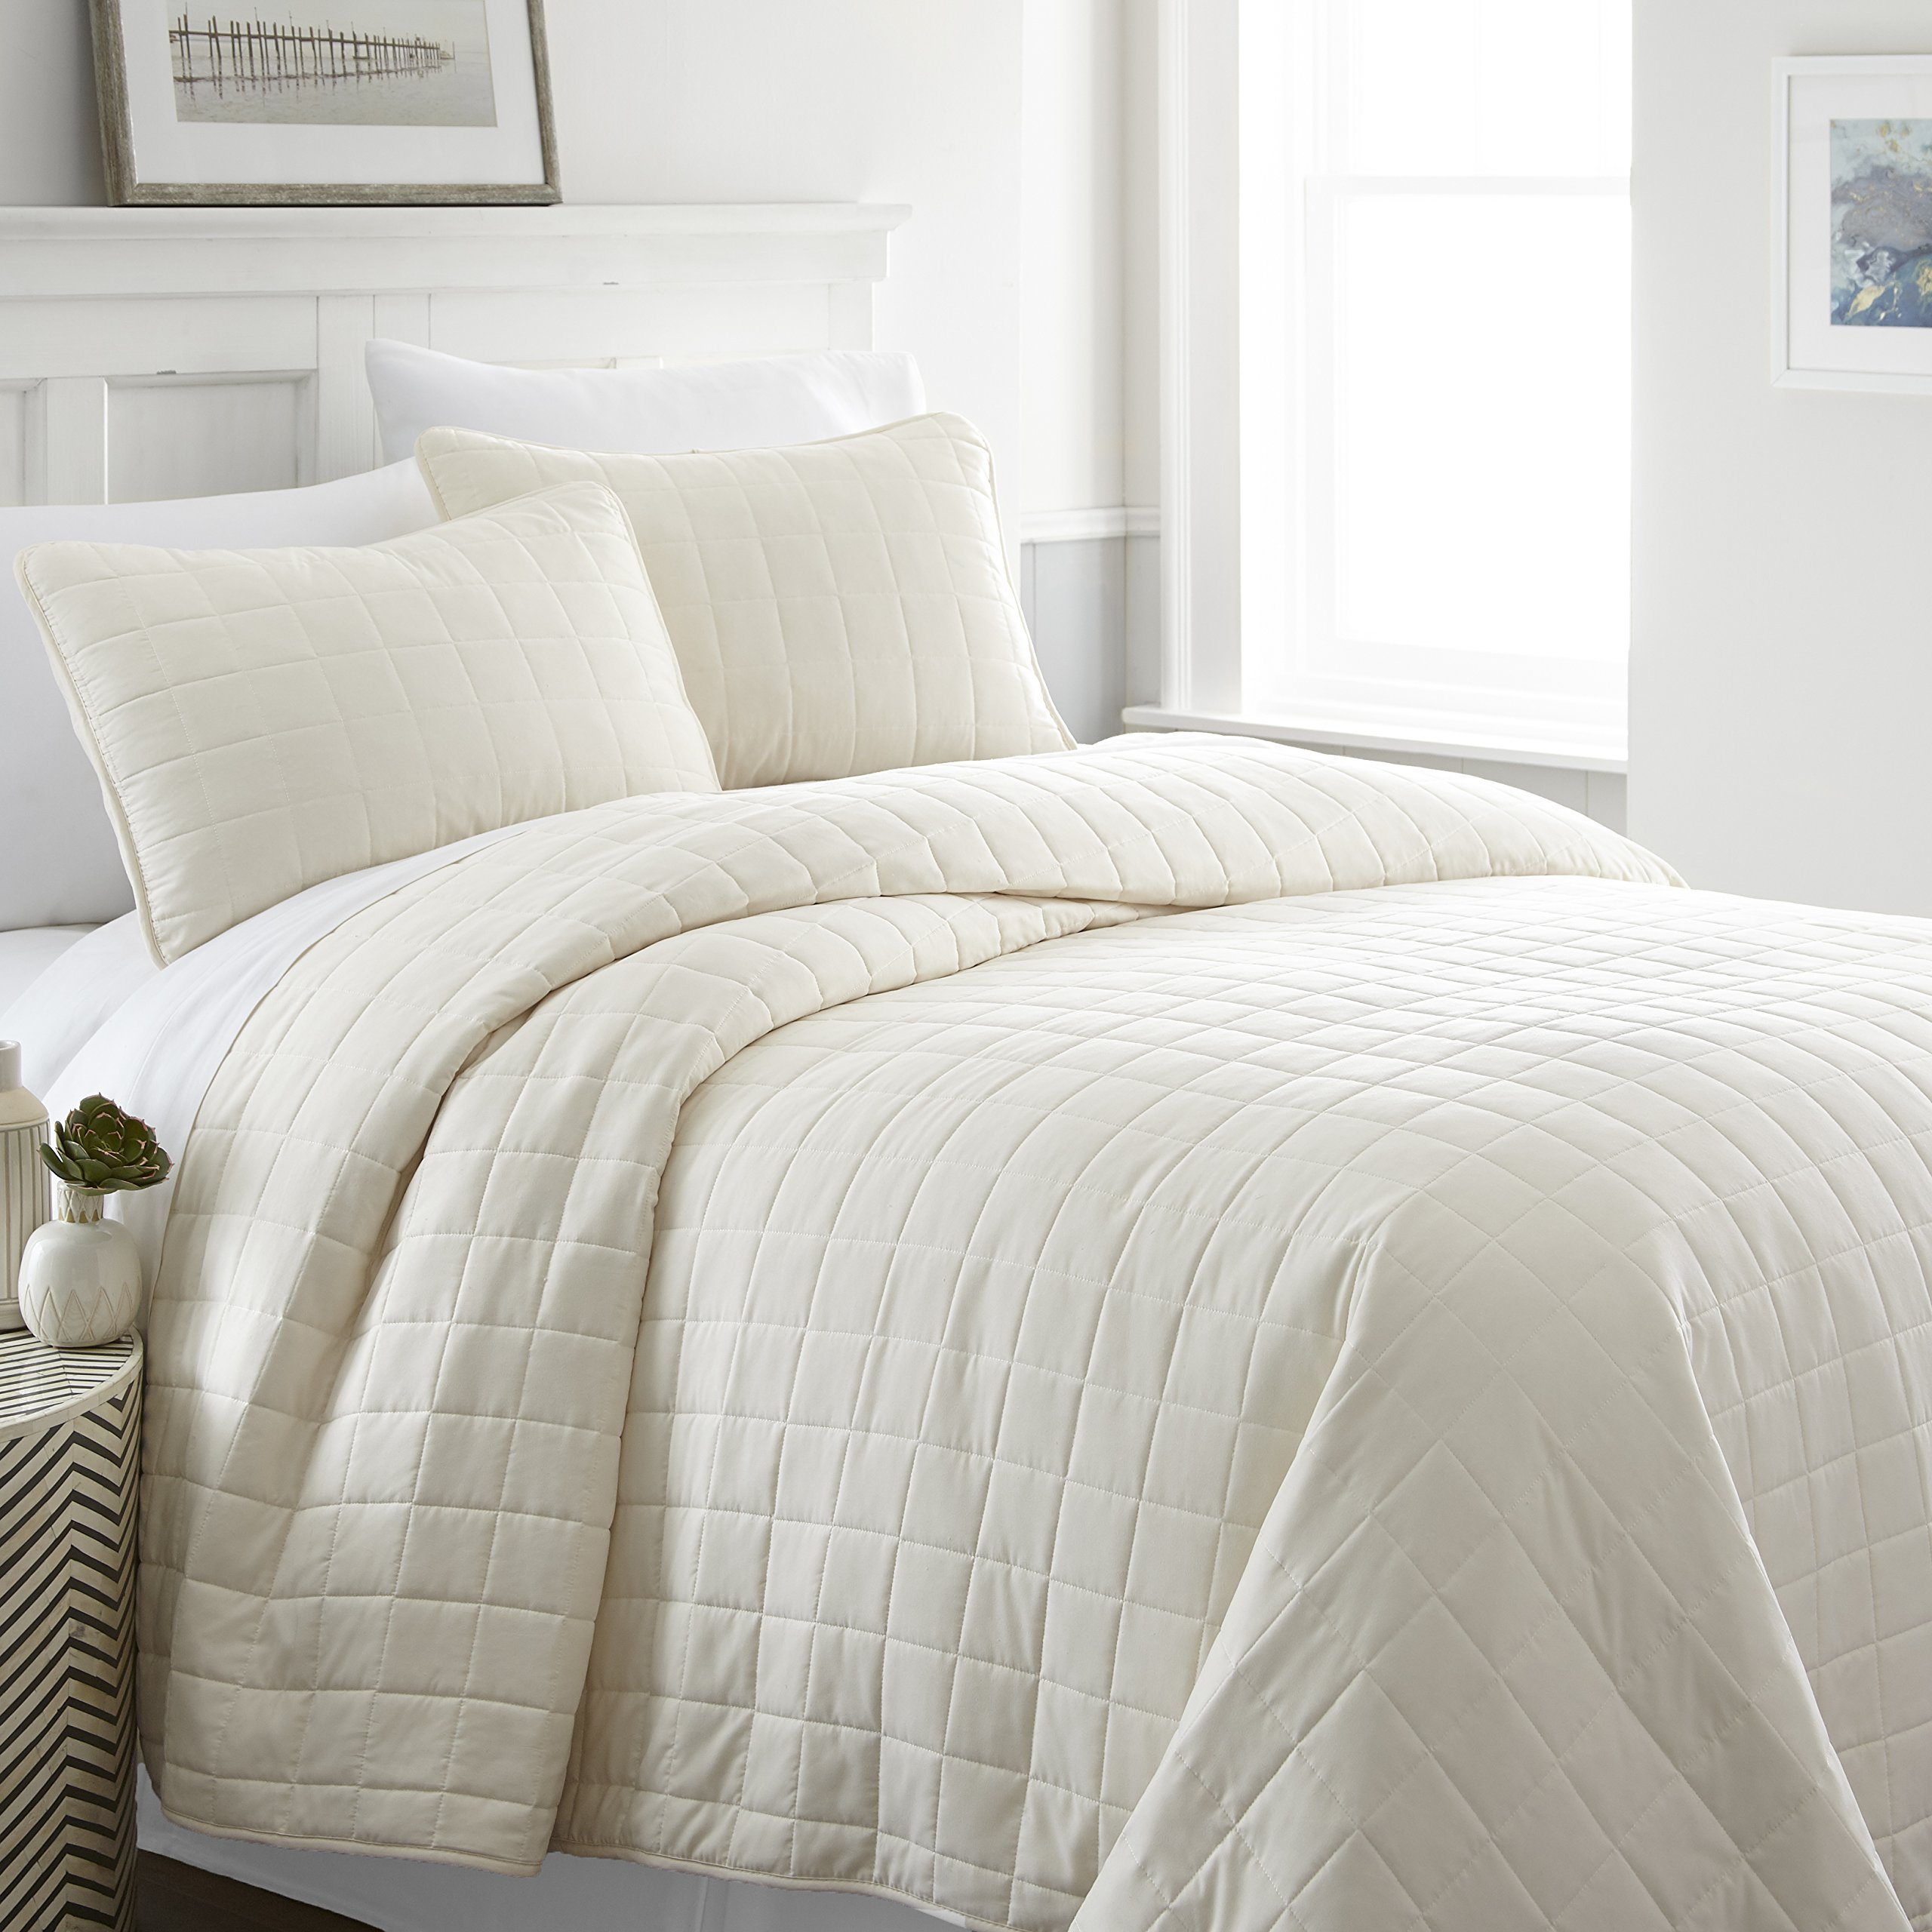 ienjy Home Square Patterned Quilted Coverlet Set, King, Ivory